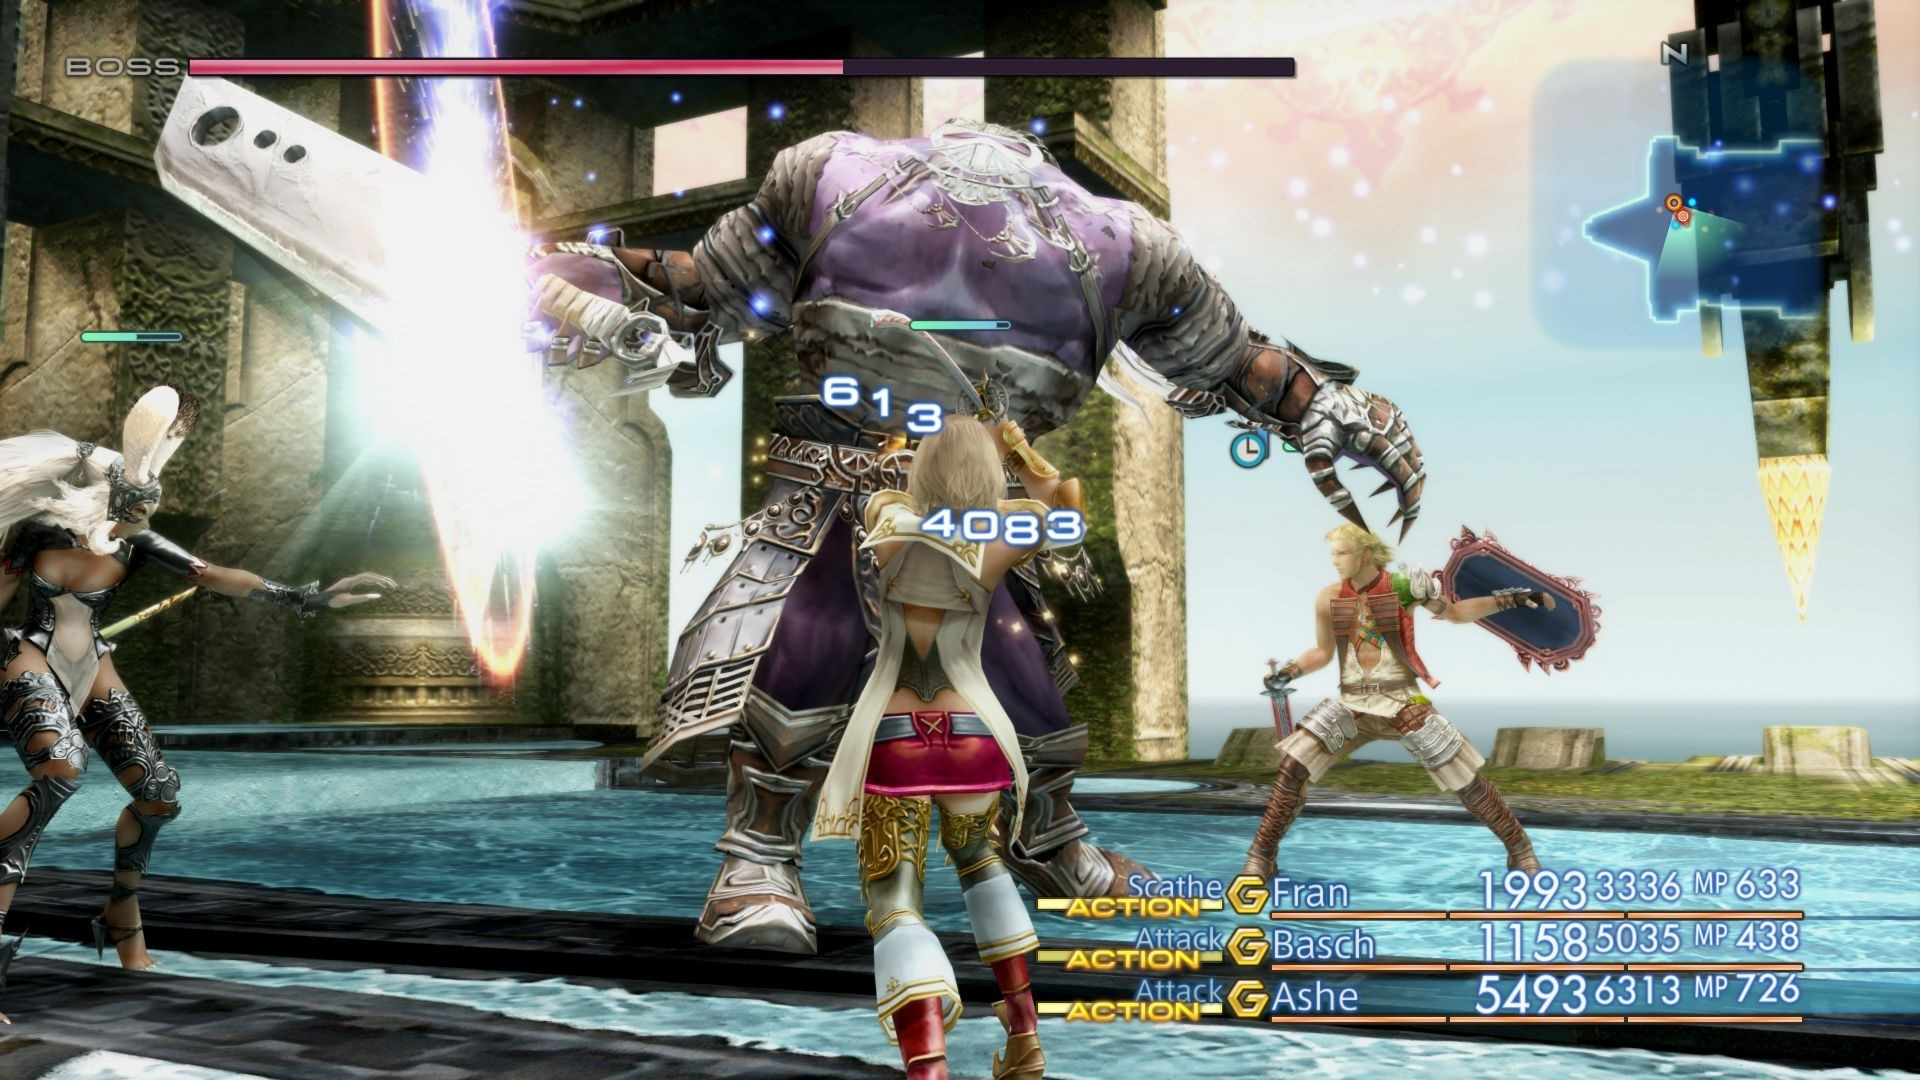 1920x1080 ... Final Fantasy XII: The Zodiac Age screenshot 3 ...